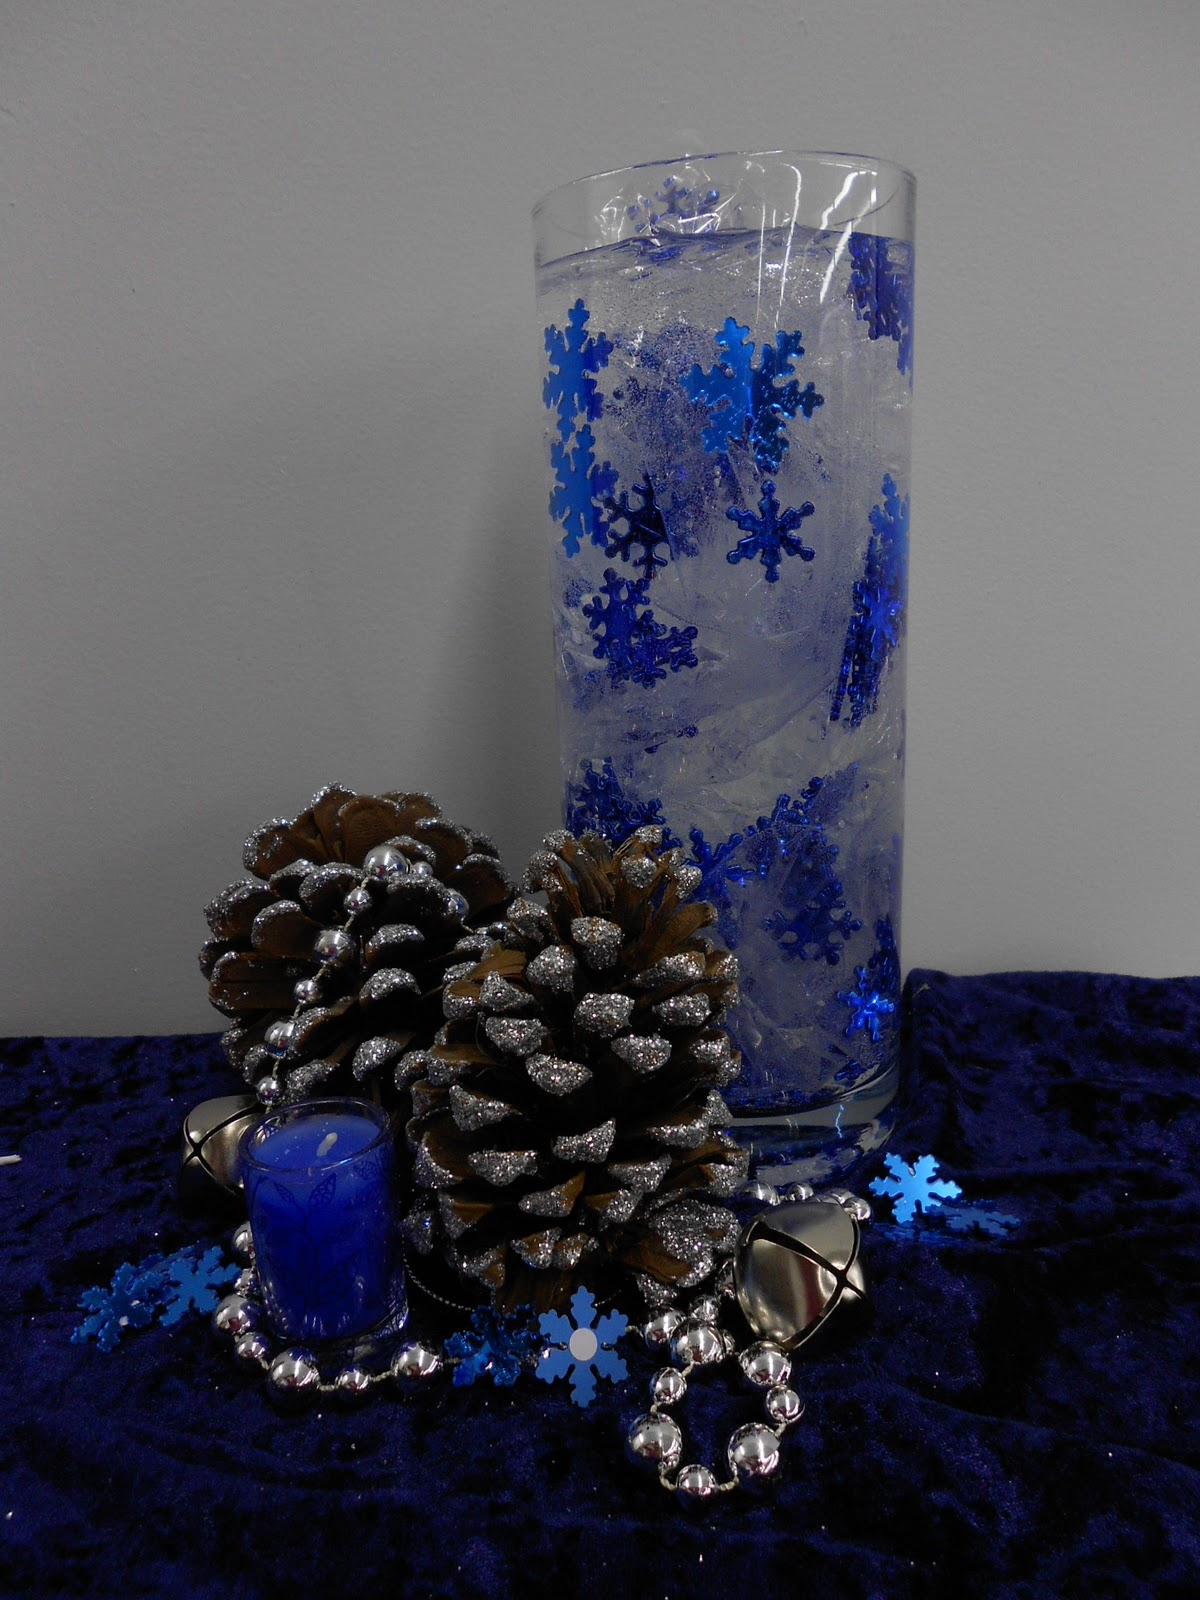 church-christmas-decorations-in-glass-vase